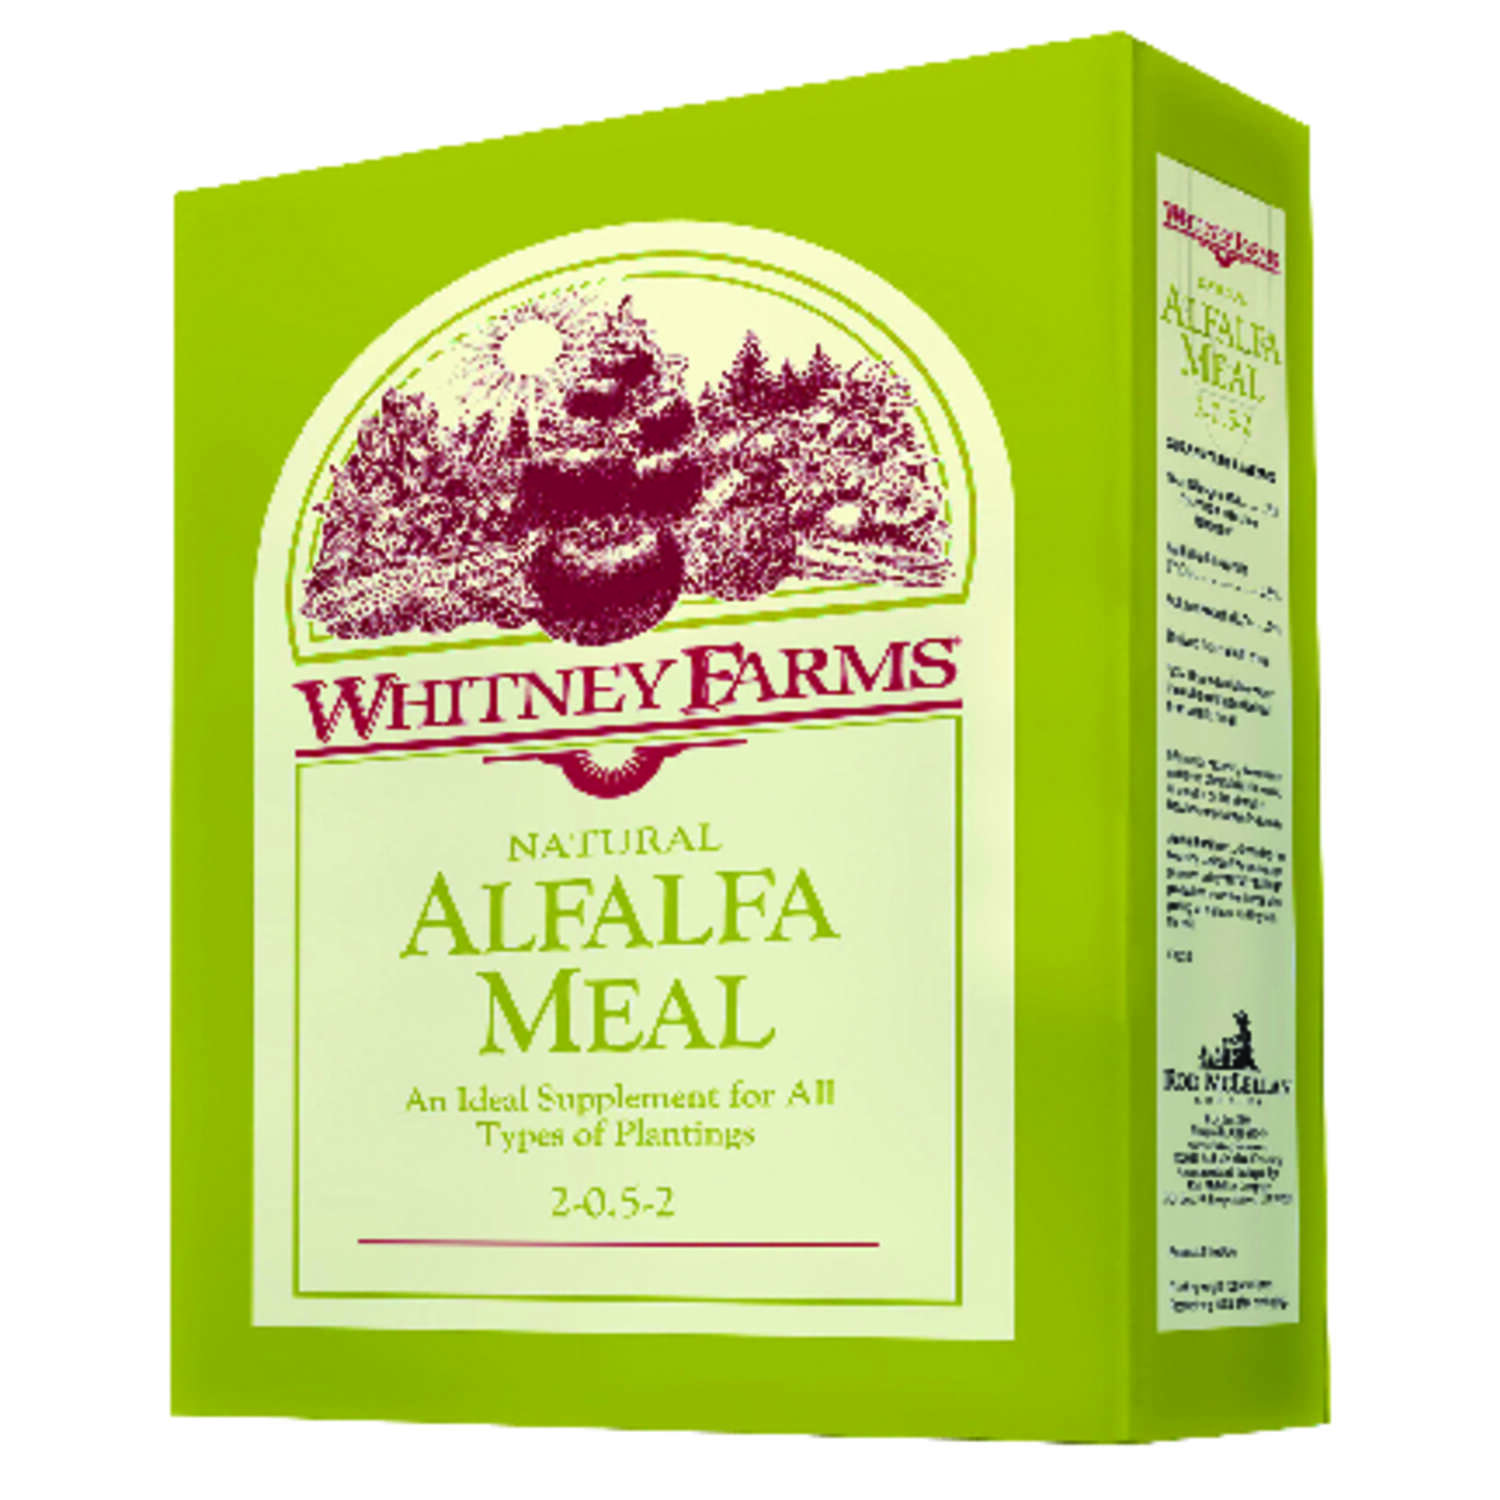 Whitney Farms  Alfalfa Meal  Granules  Organic Plant Food  3 lb.